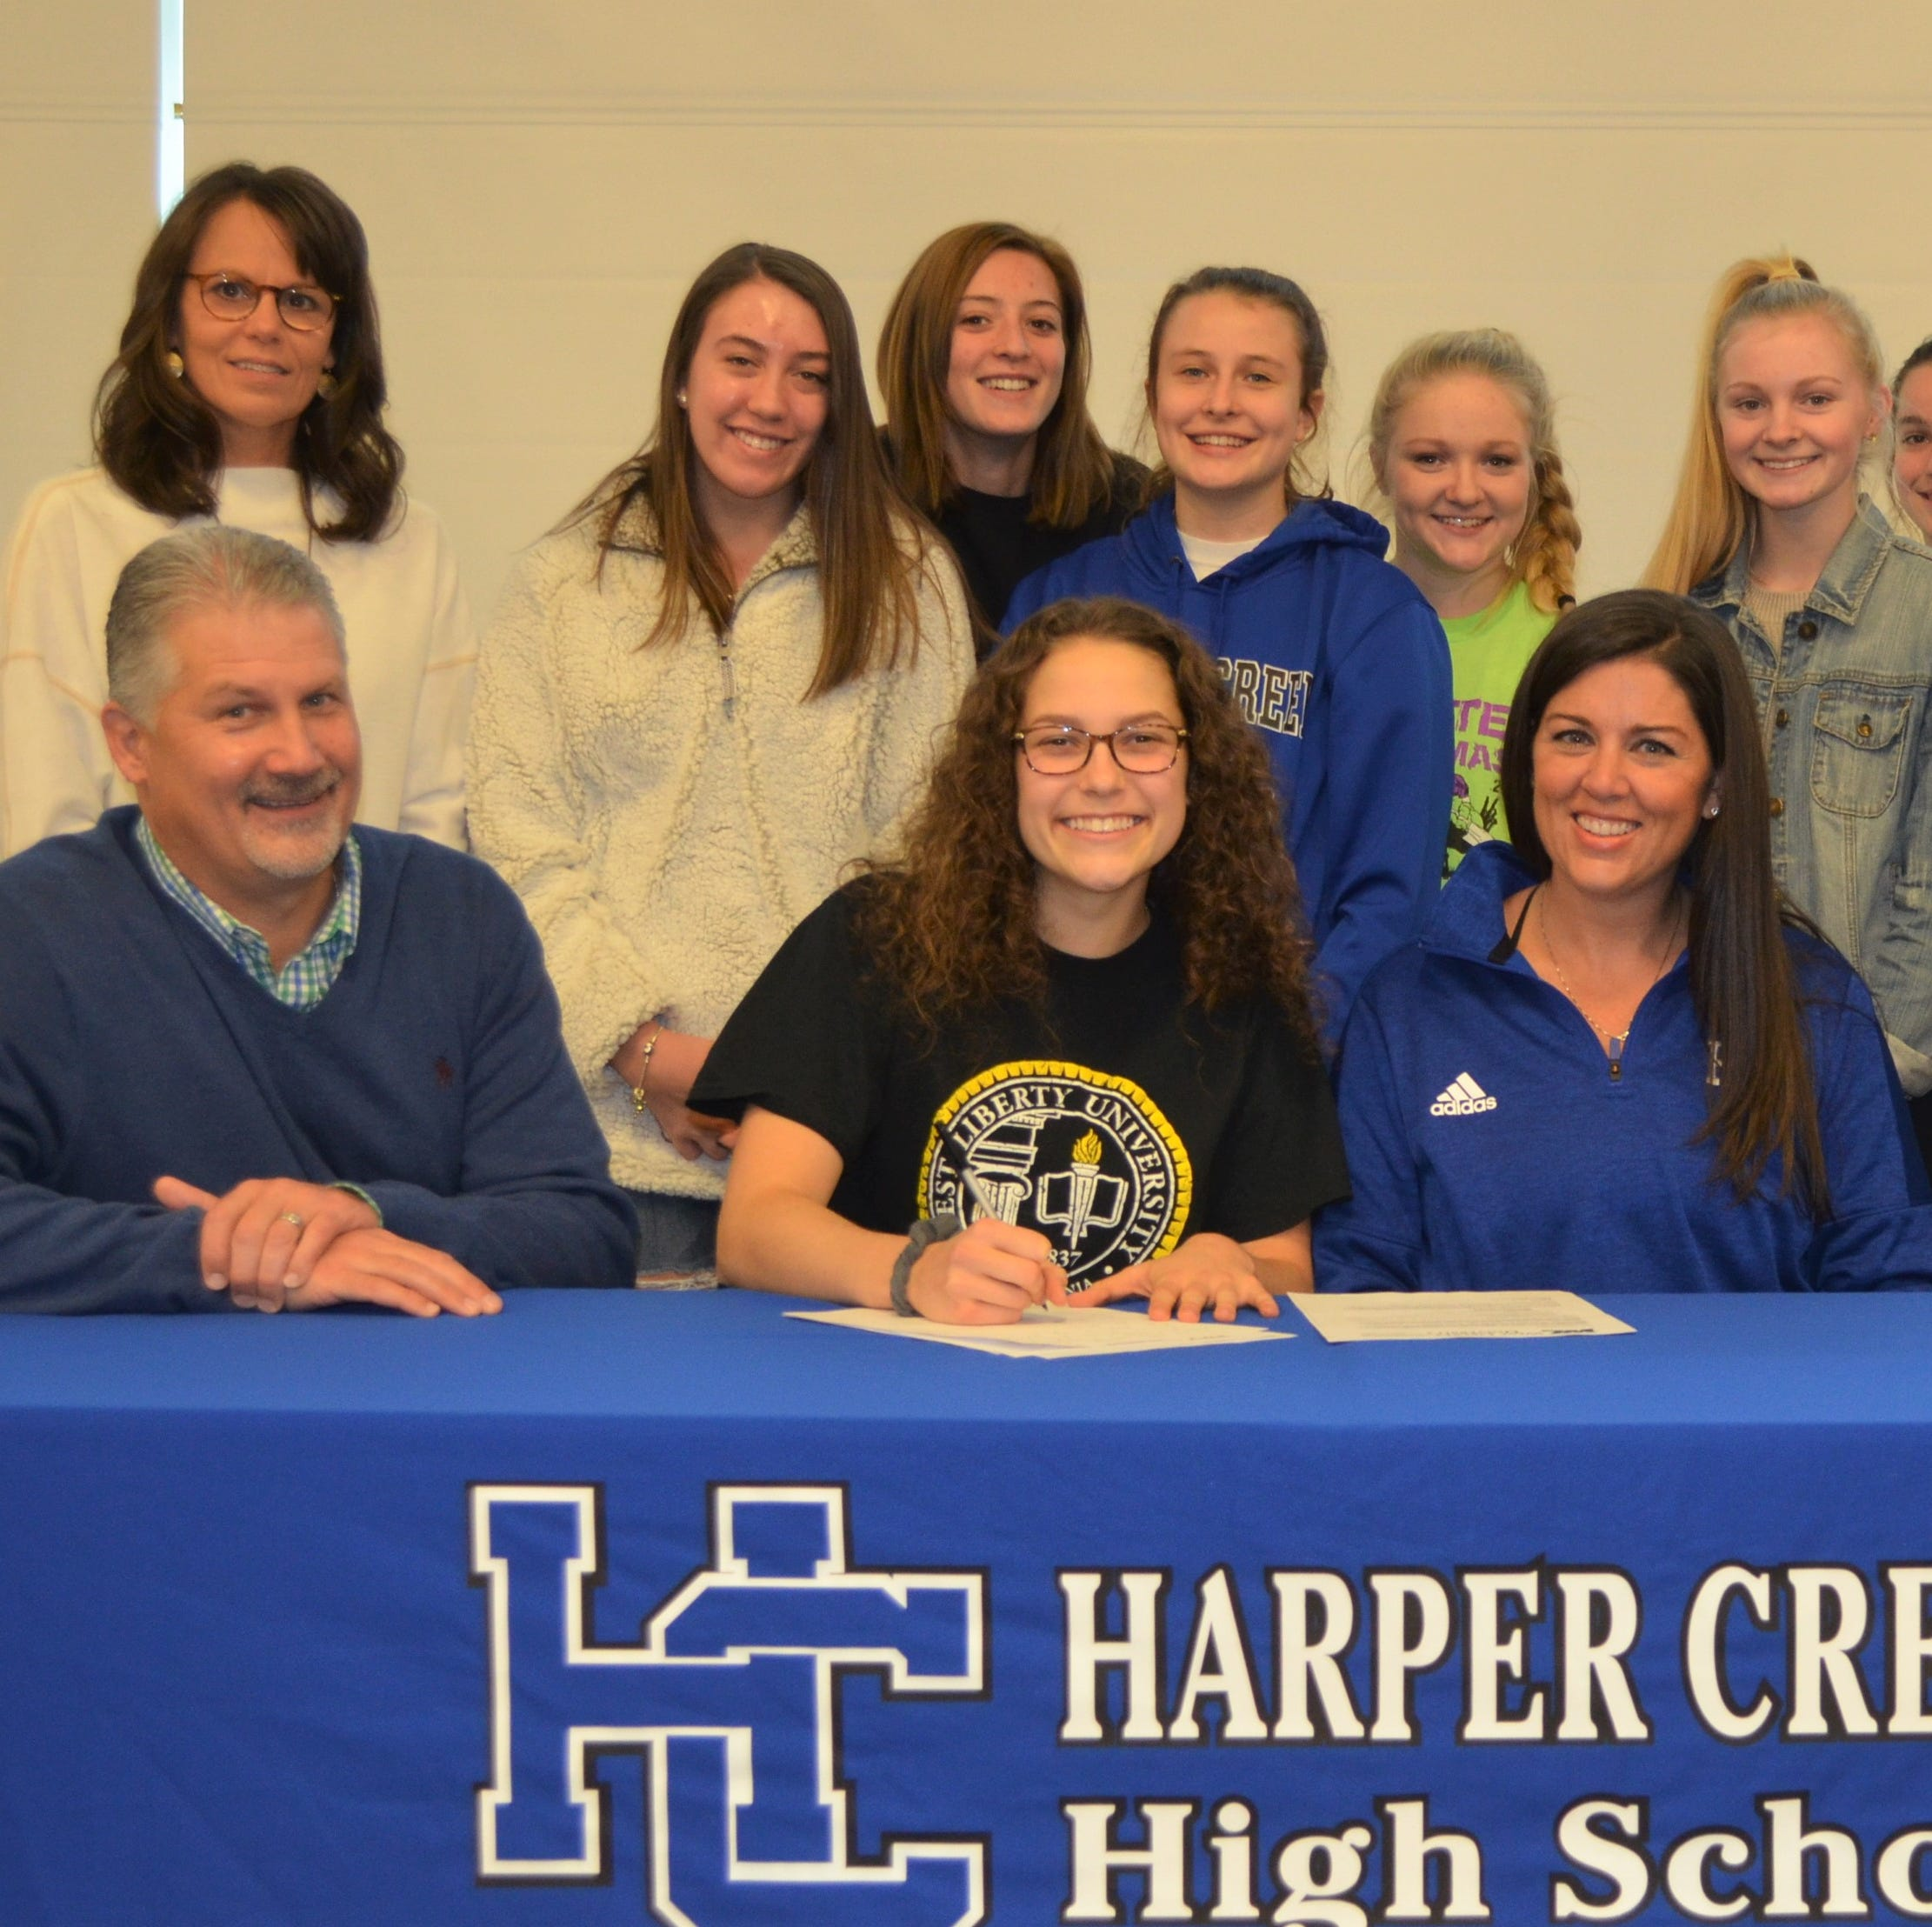 Harper Creek's Hayes signs to play volleyball at West Liberty